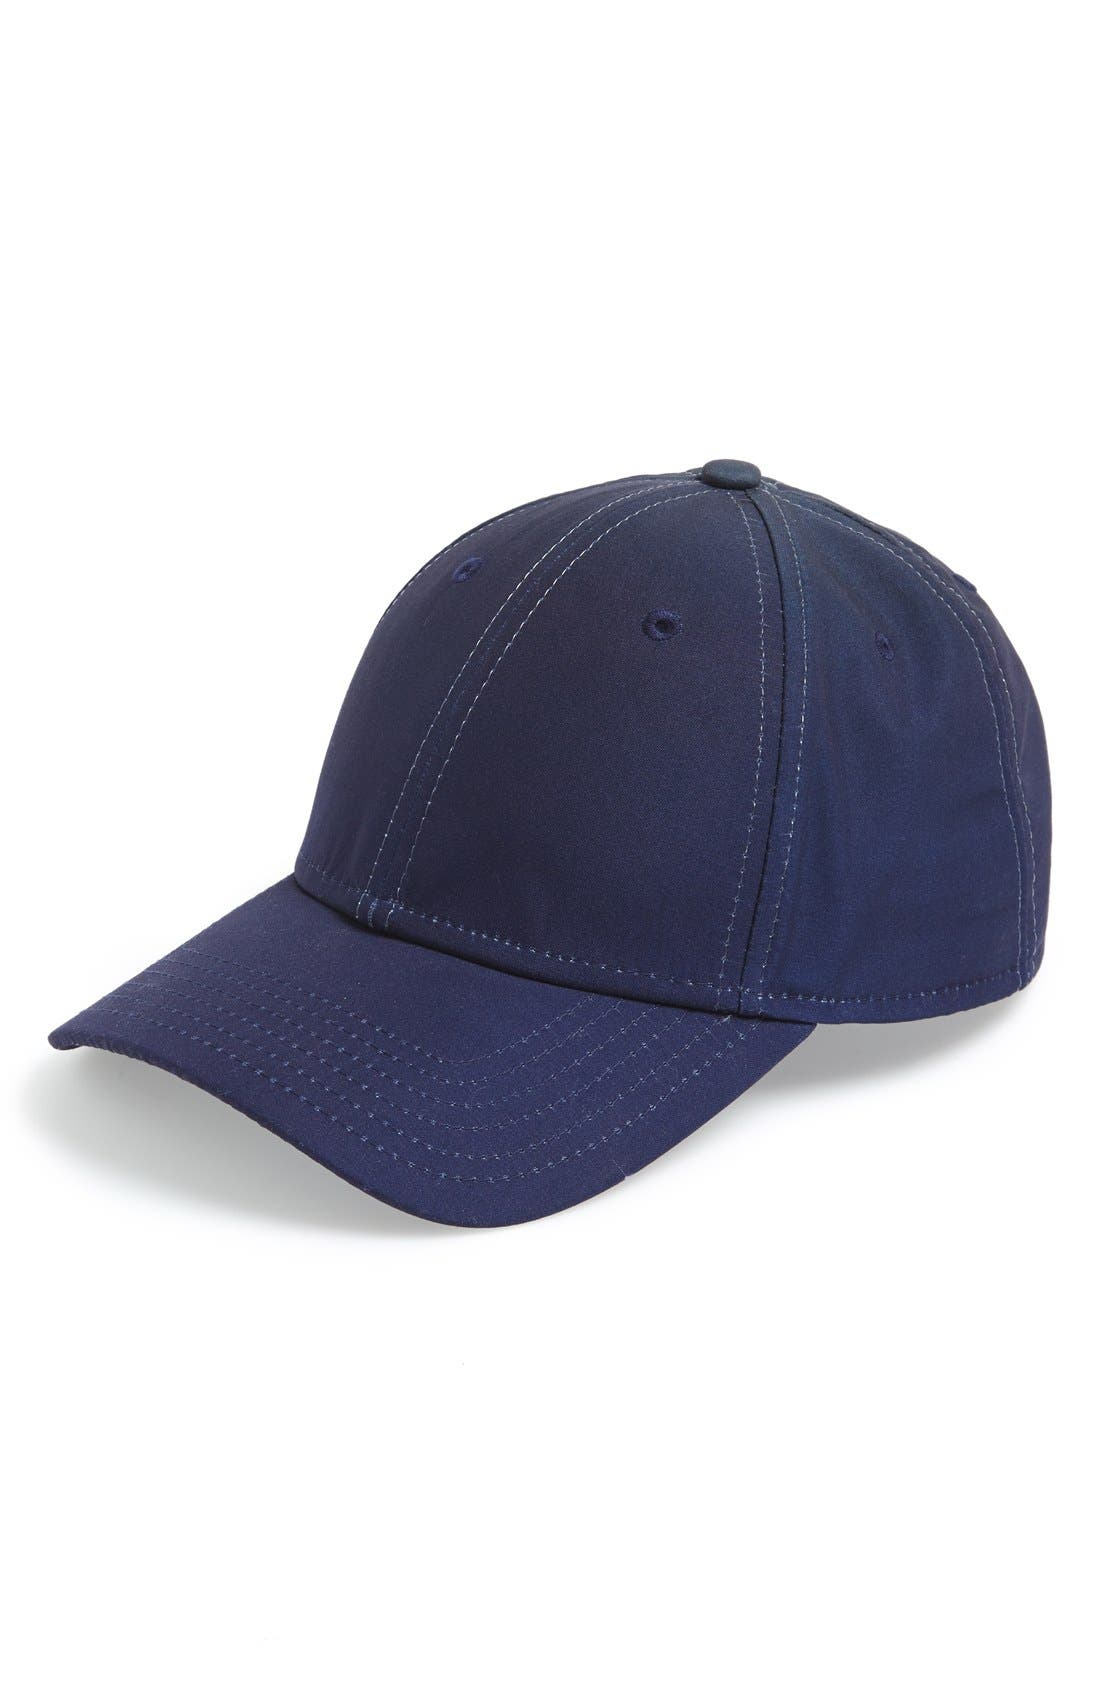 Alternate Image 1 Selected - Gents 'Ombré' Baseball Cap